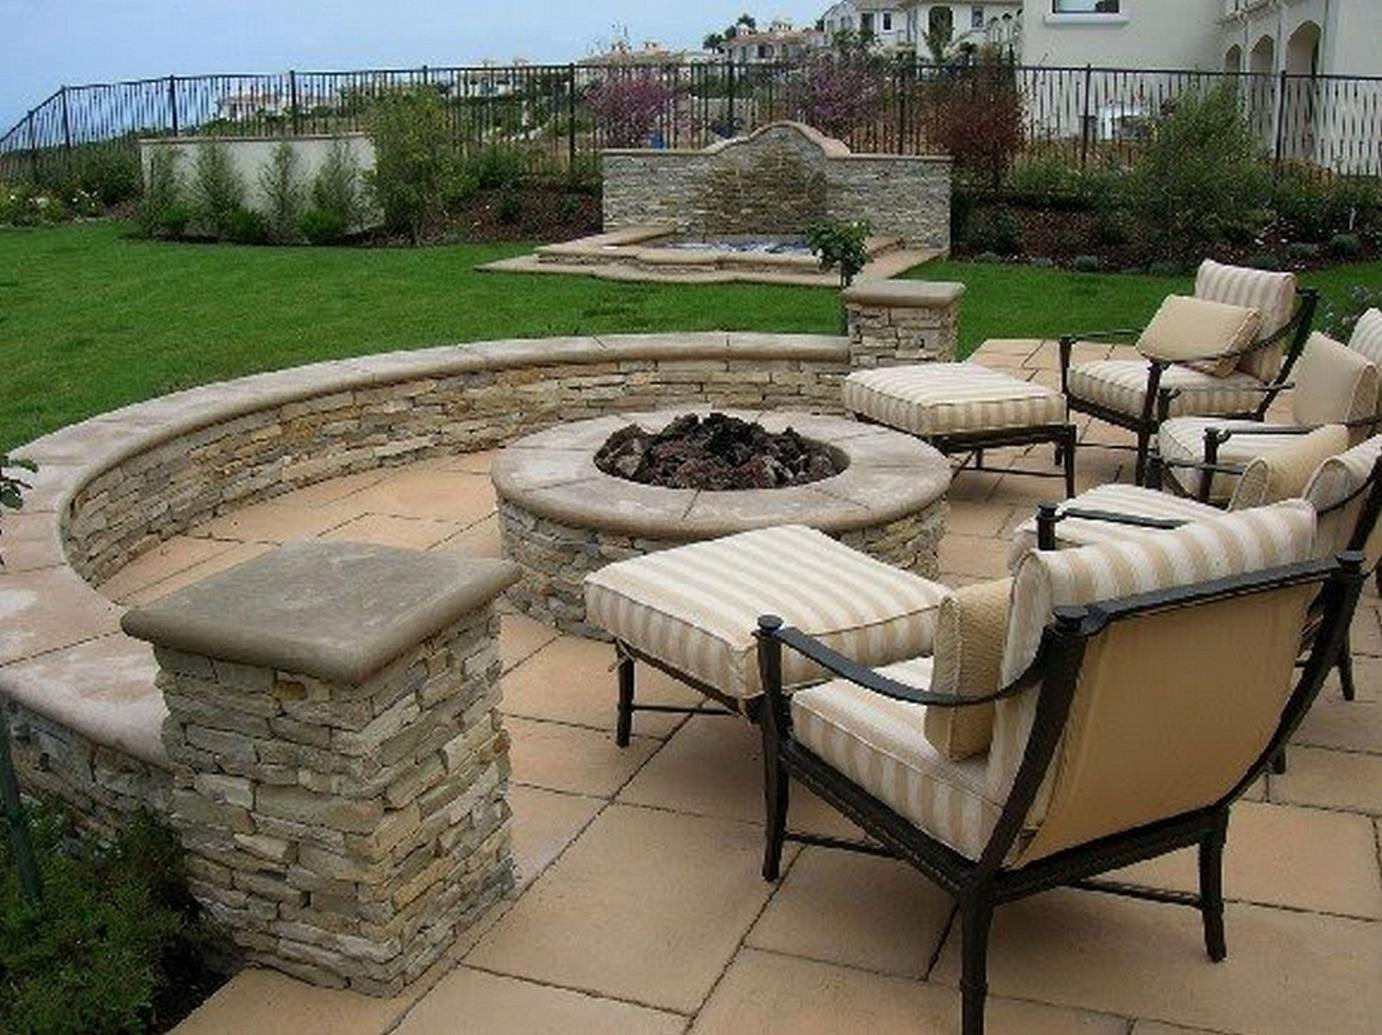 Superb Photo Wedding Ideas Backyard Cheap Ideas Backyard Patio Ideas On A Budget Backyard Patio Ideas On A Budget Large Backyard outdoor Ideas For The Backyard